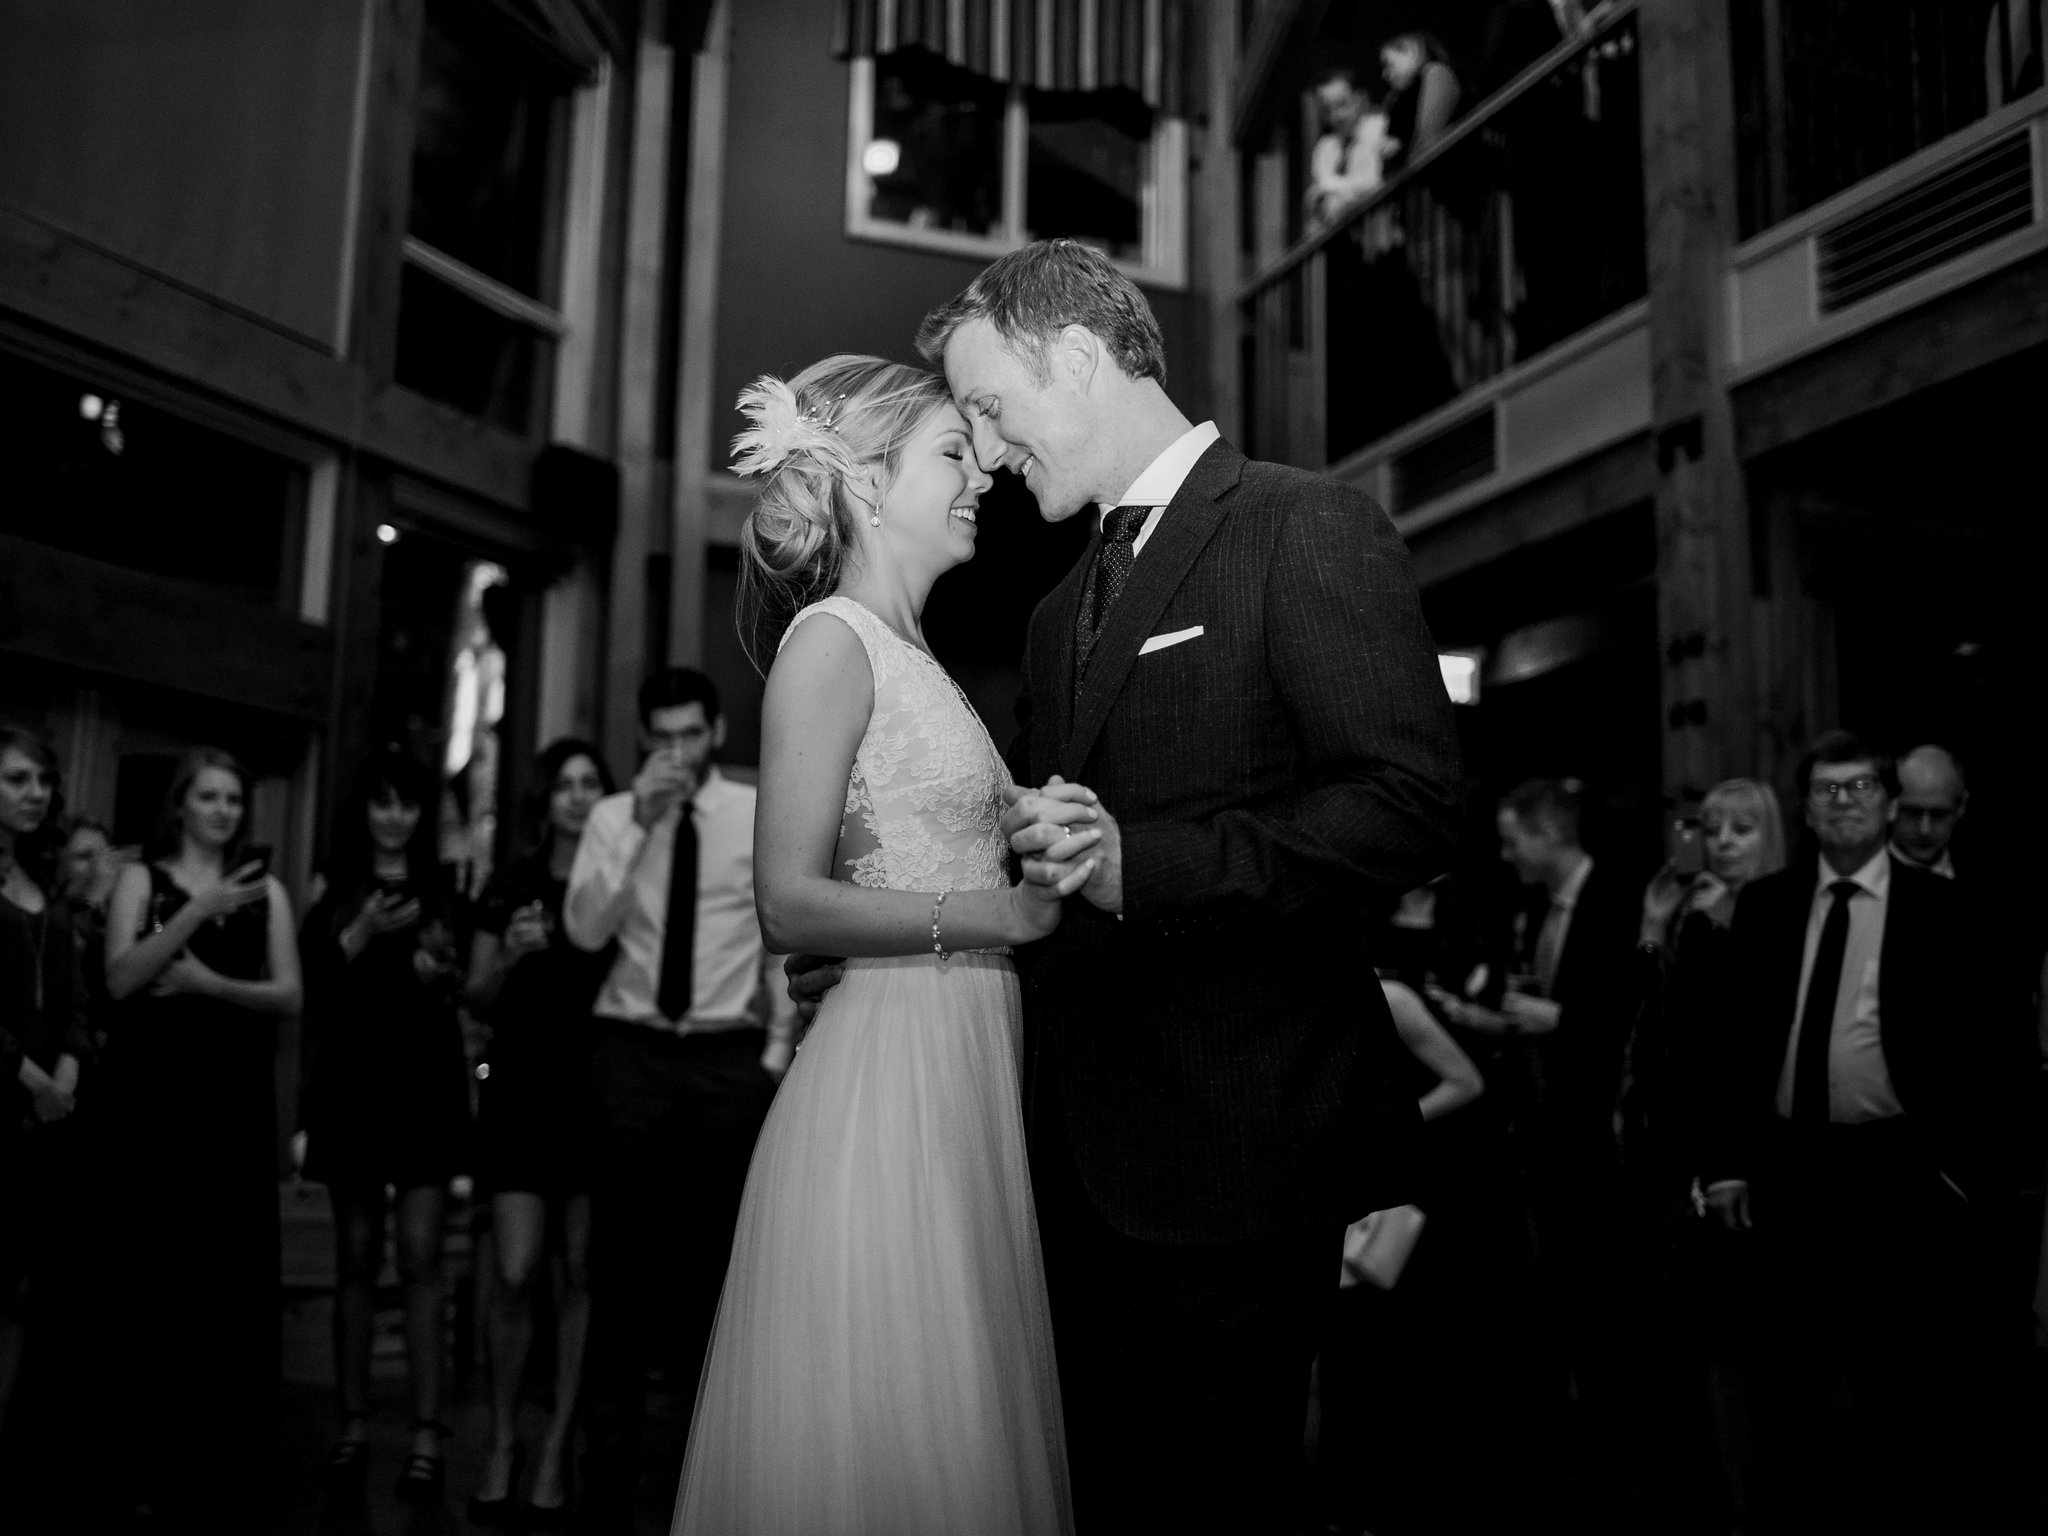 Julie+Shawn-519.JPG